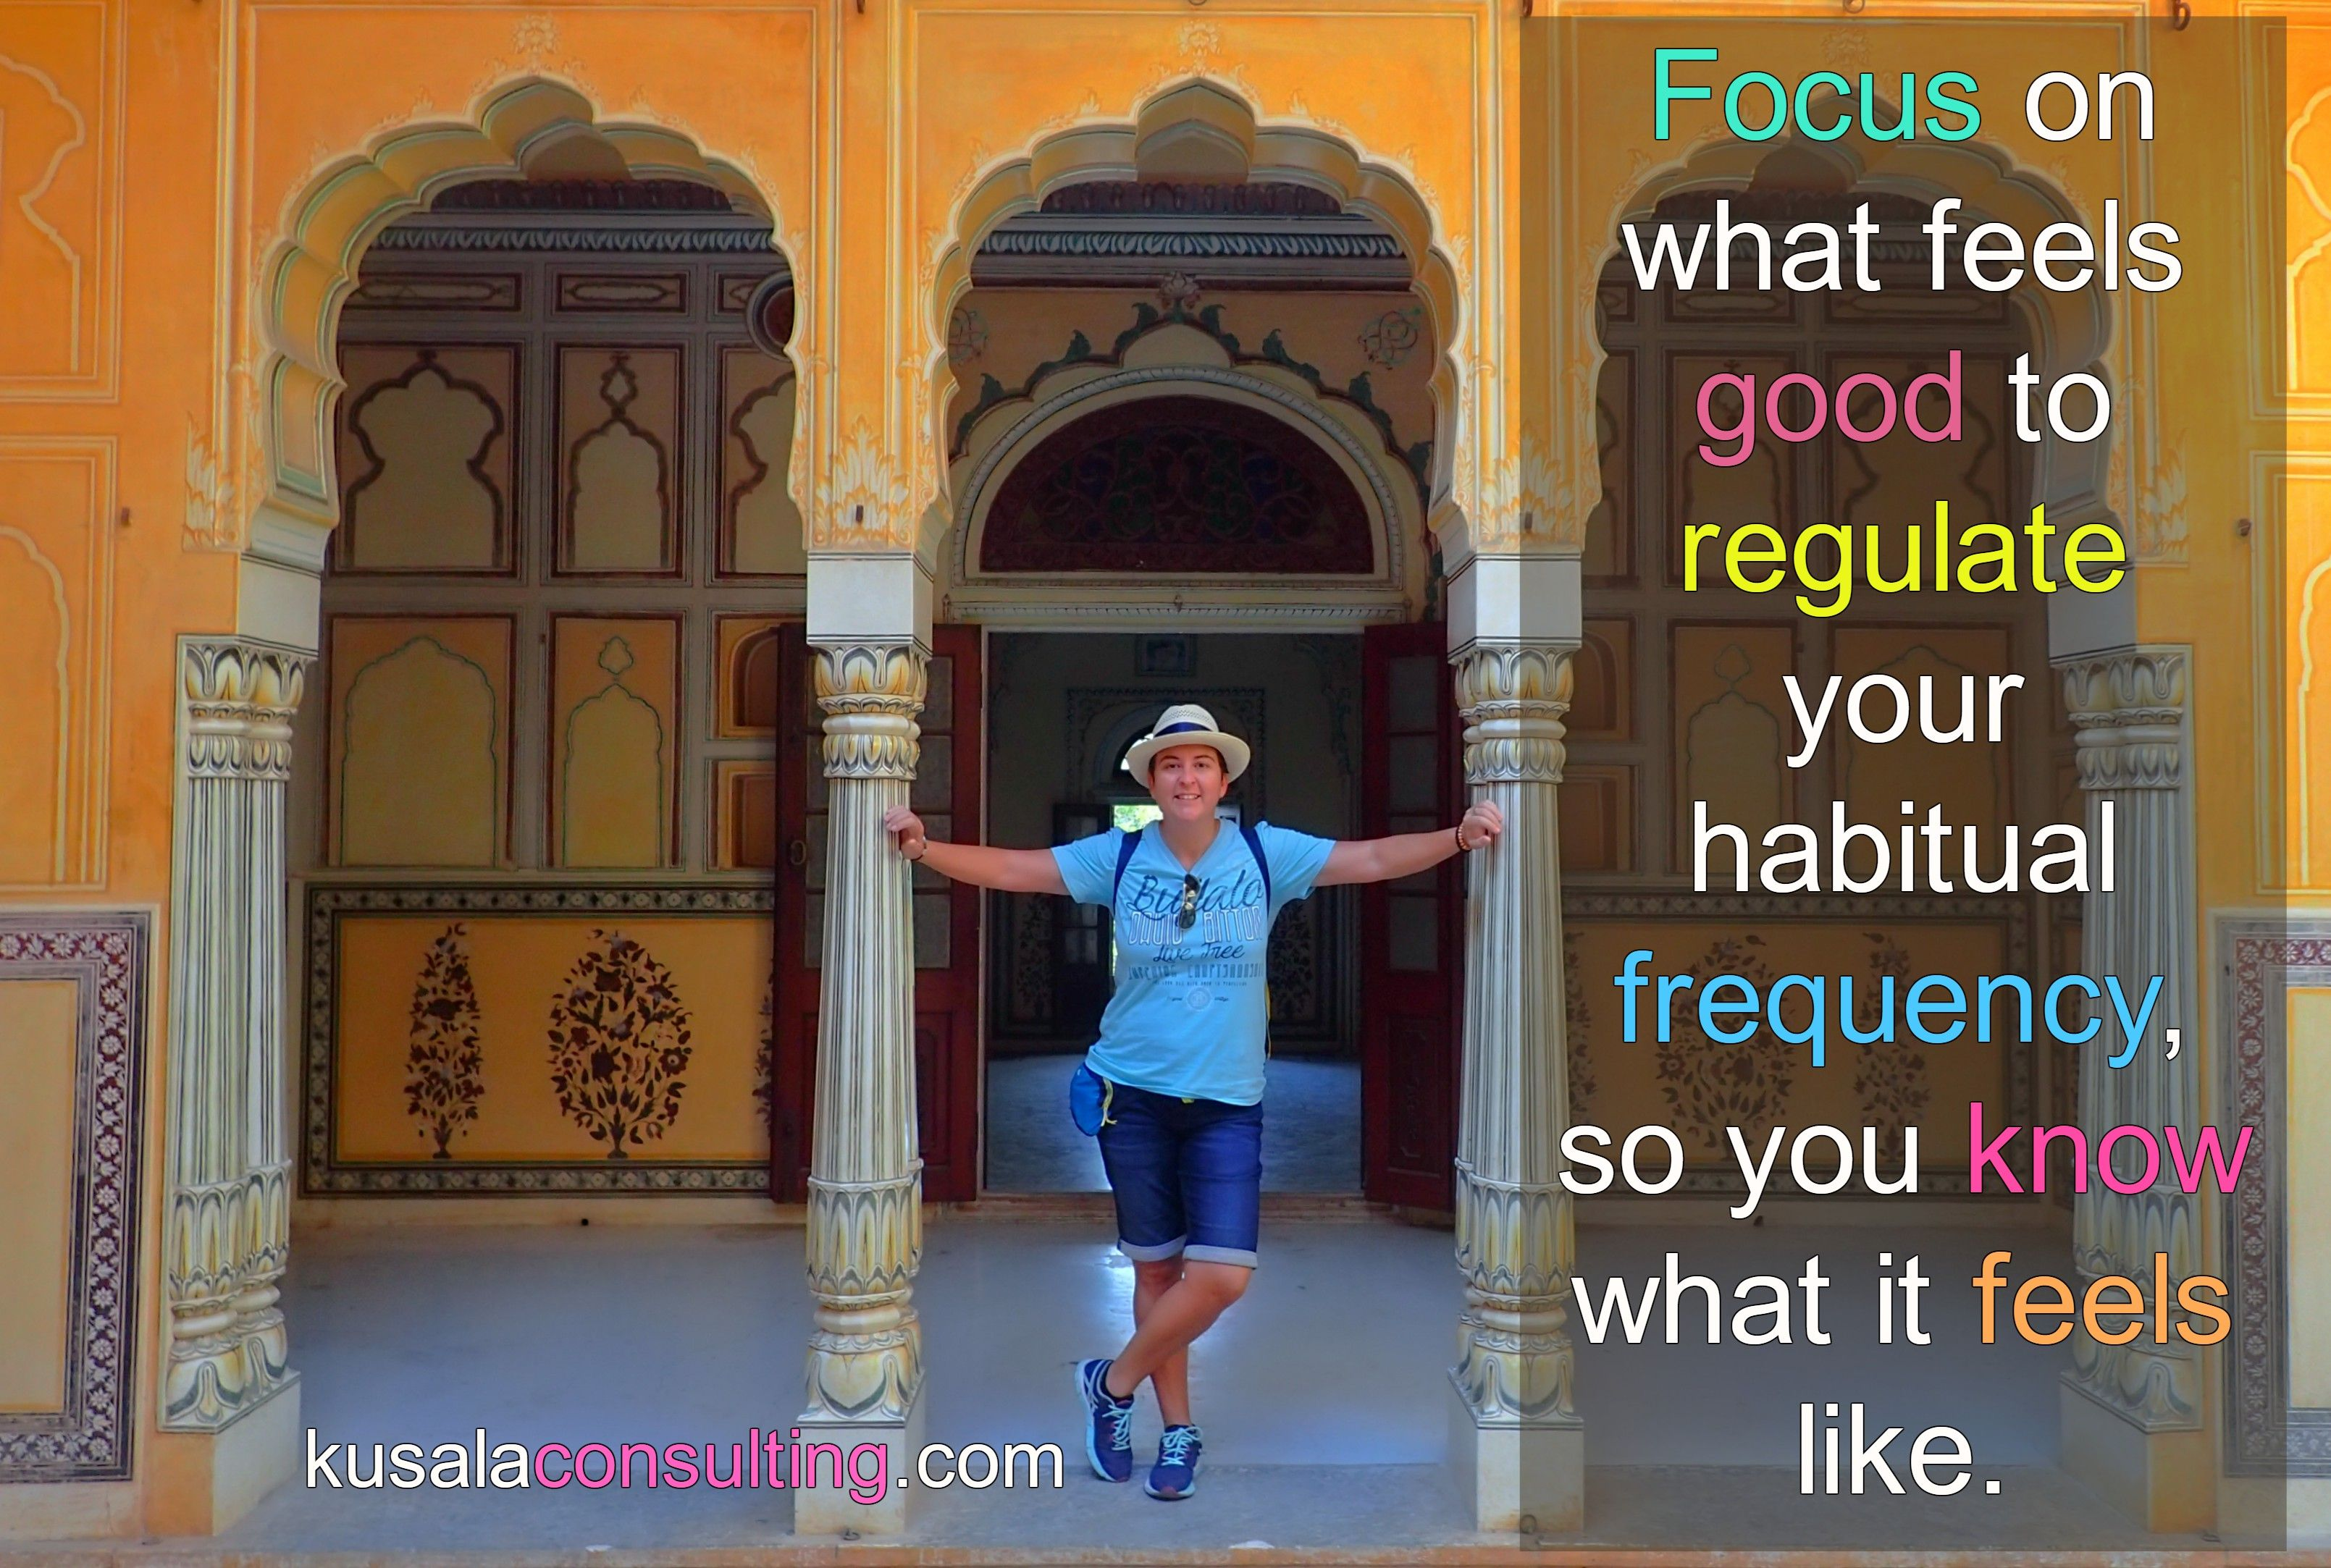 Focus on what feels good to regulate your habitual frequency, so you know what it feels like #focus #frequency #vibration #mindsetconsultant #lifecoach #speaker #author #digitalnomad #remoteliving #travel #srilanka